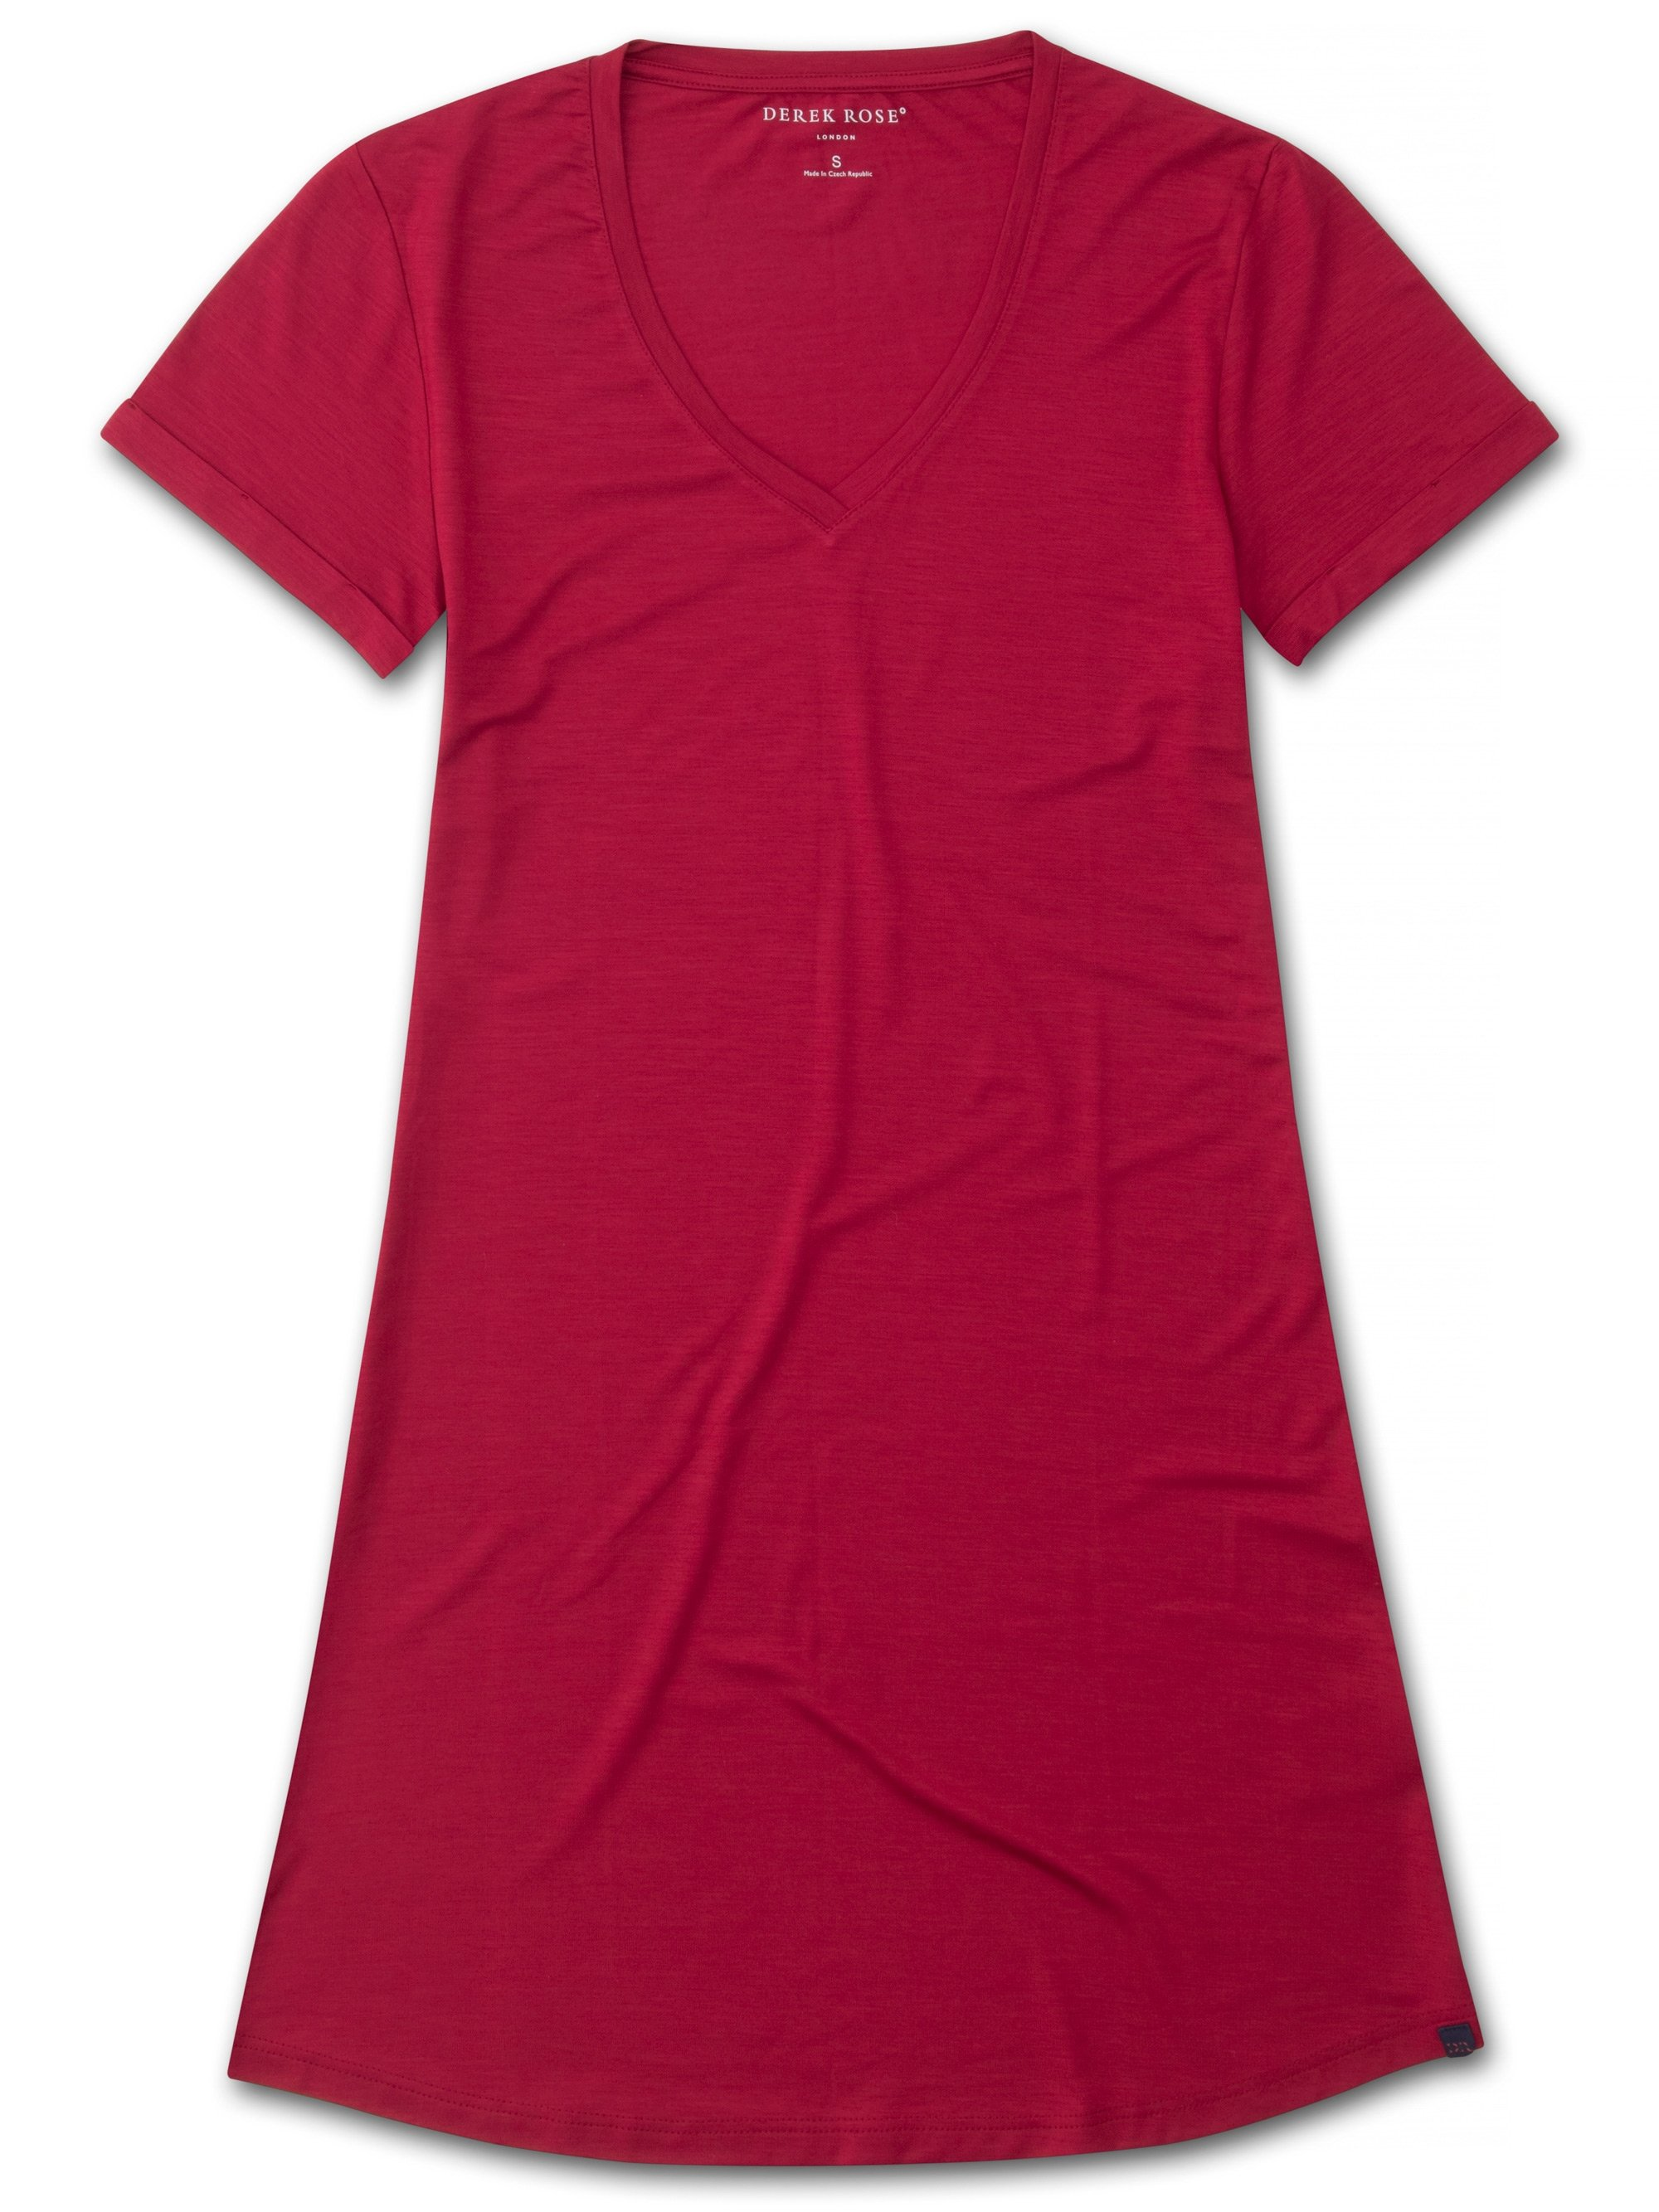 Women's V-Neck Sleep T-Shirt Lara Micro Modal Stretch Crimson